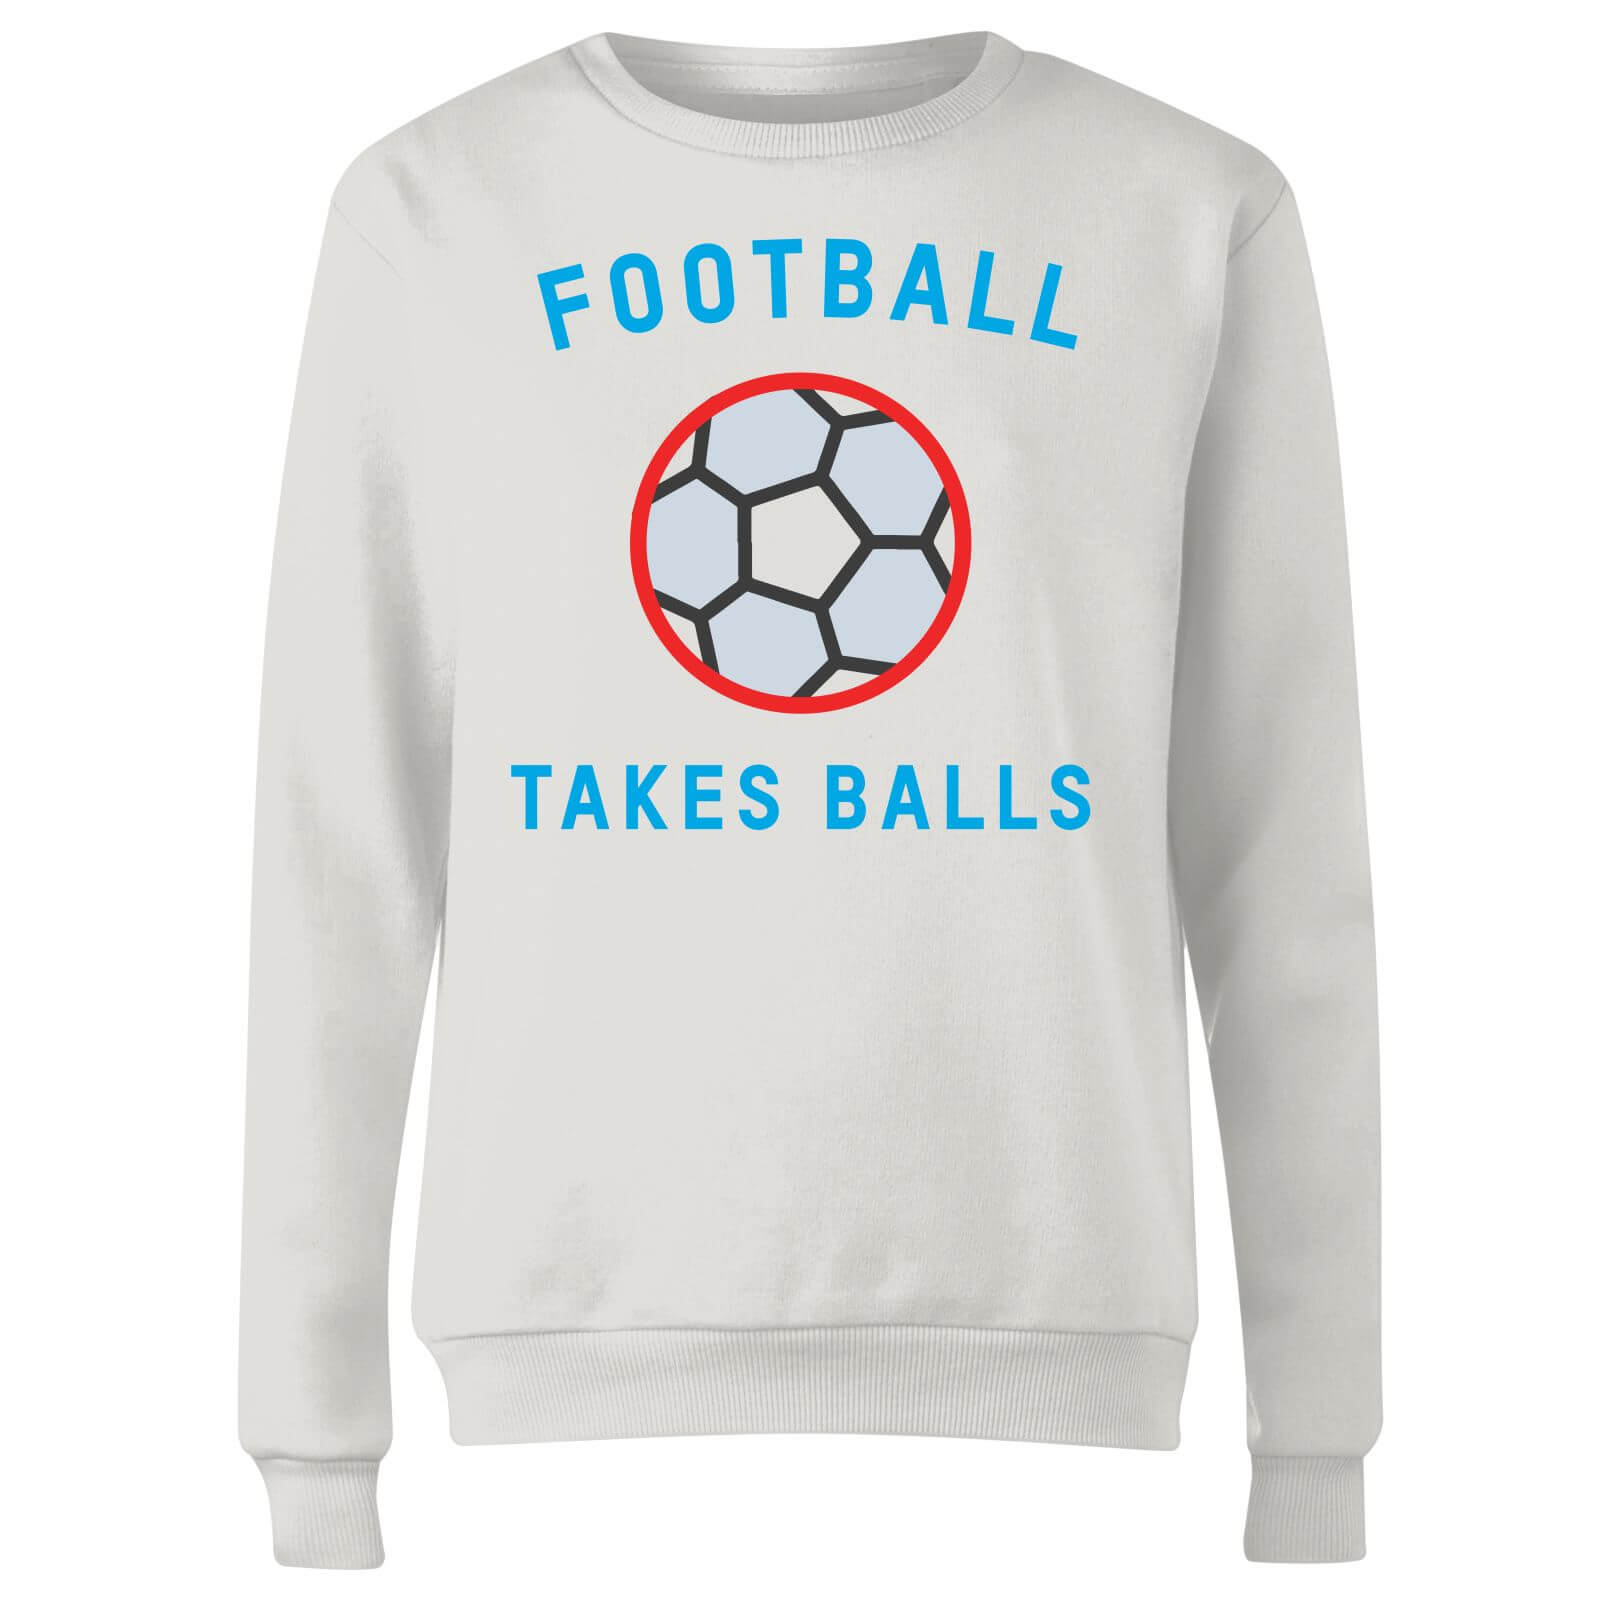 Football Takes Balls Women